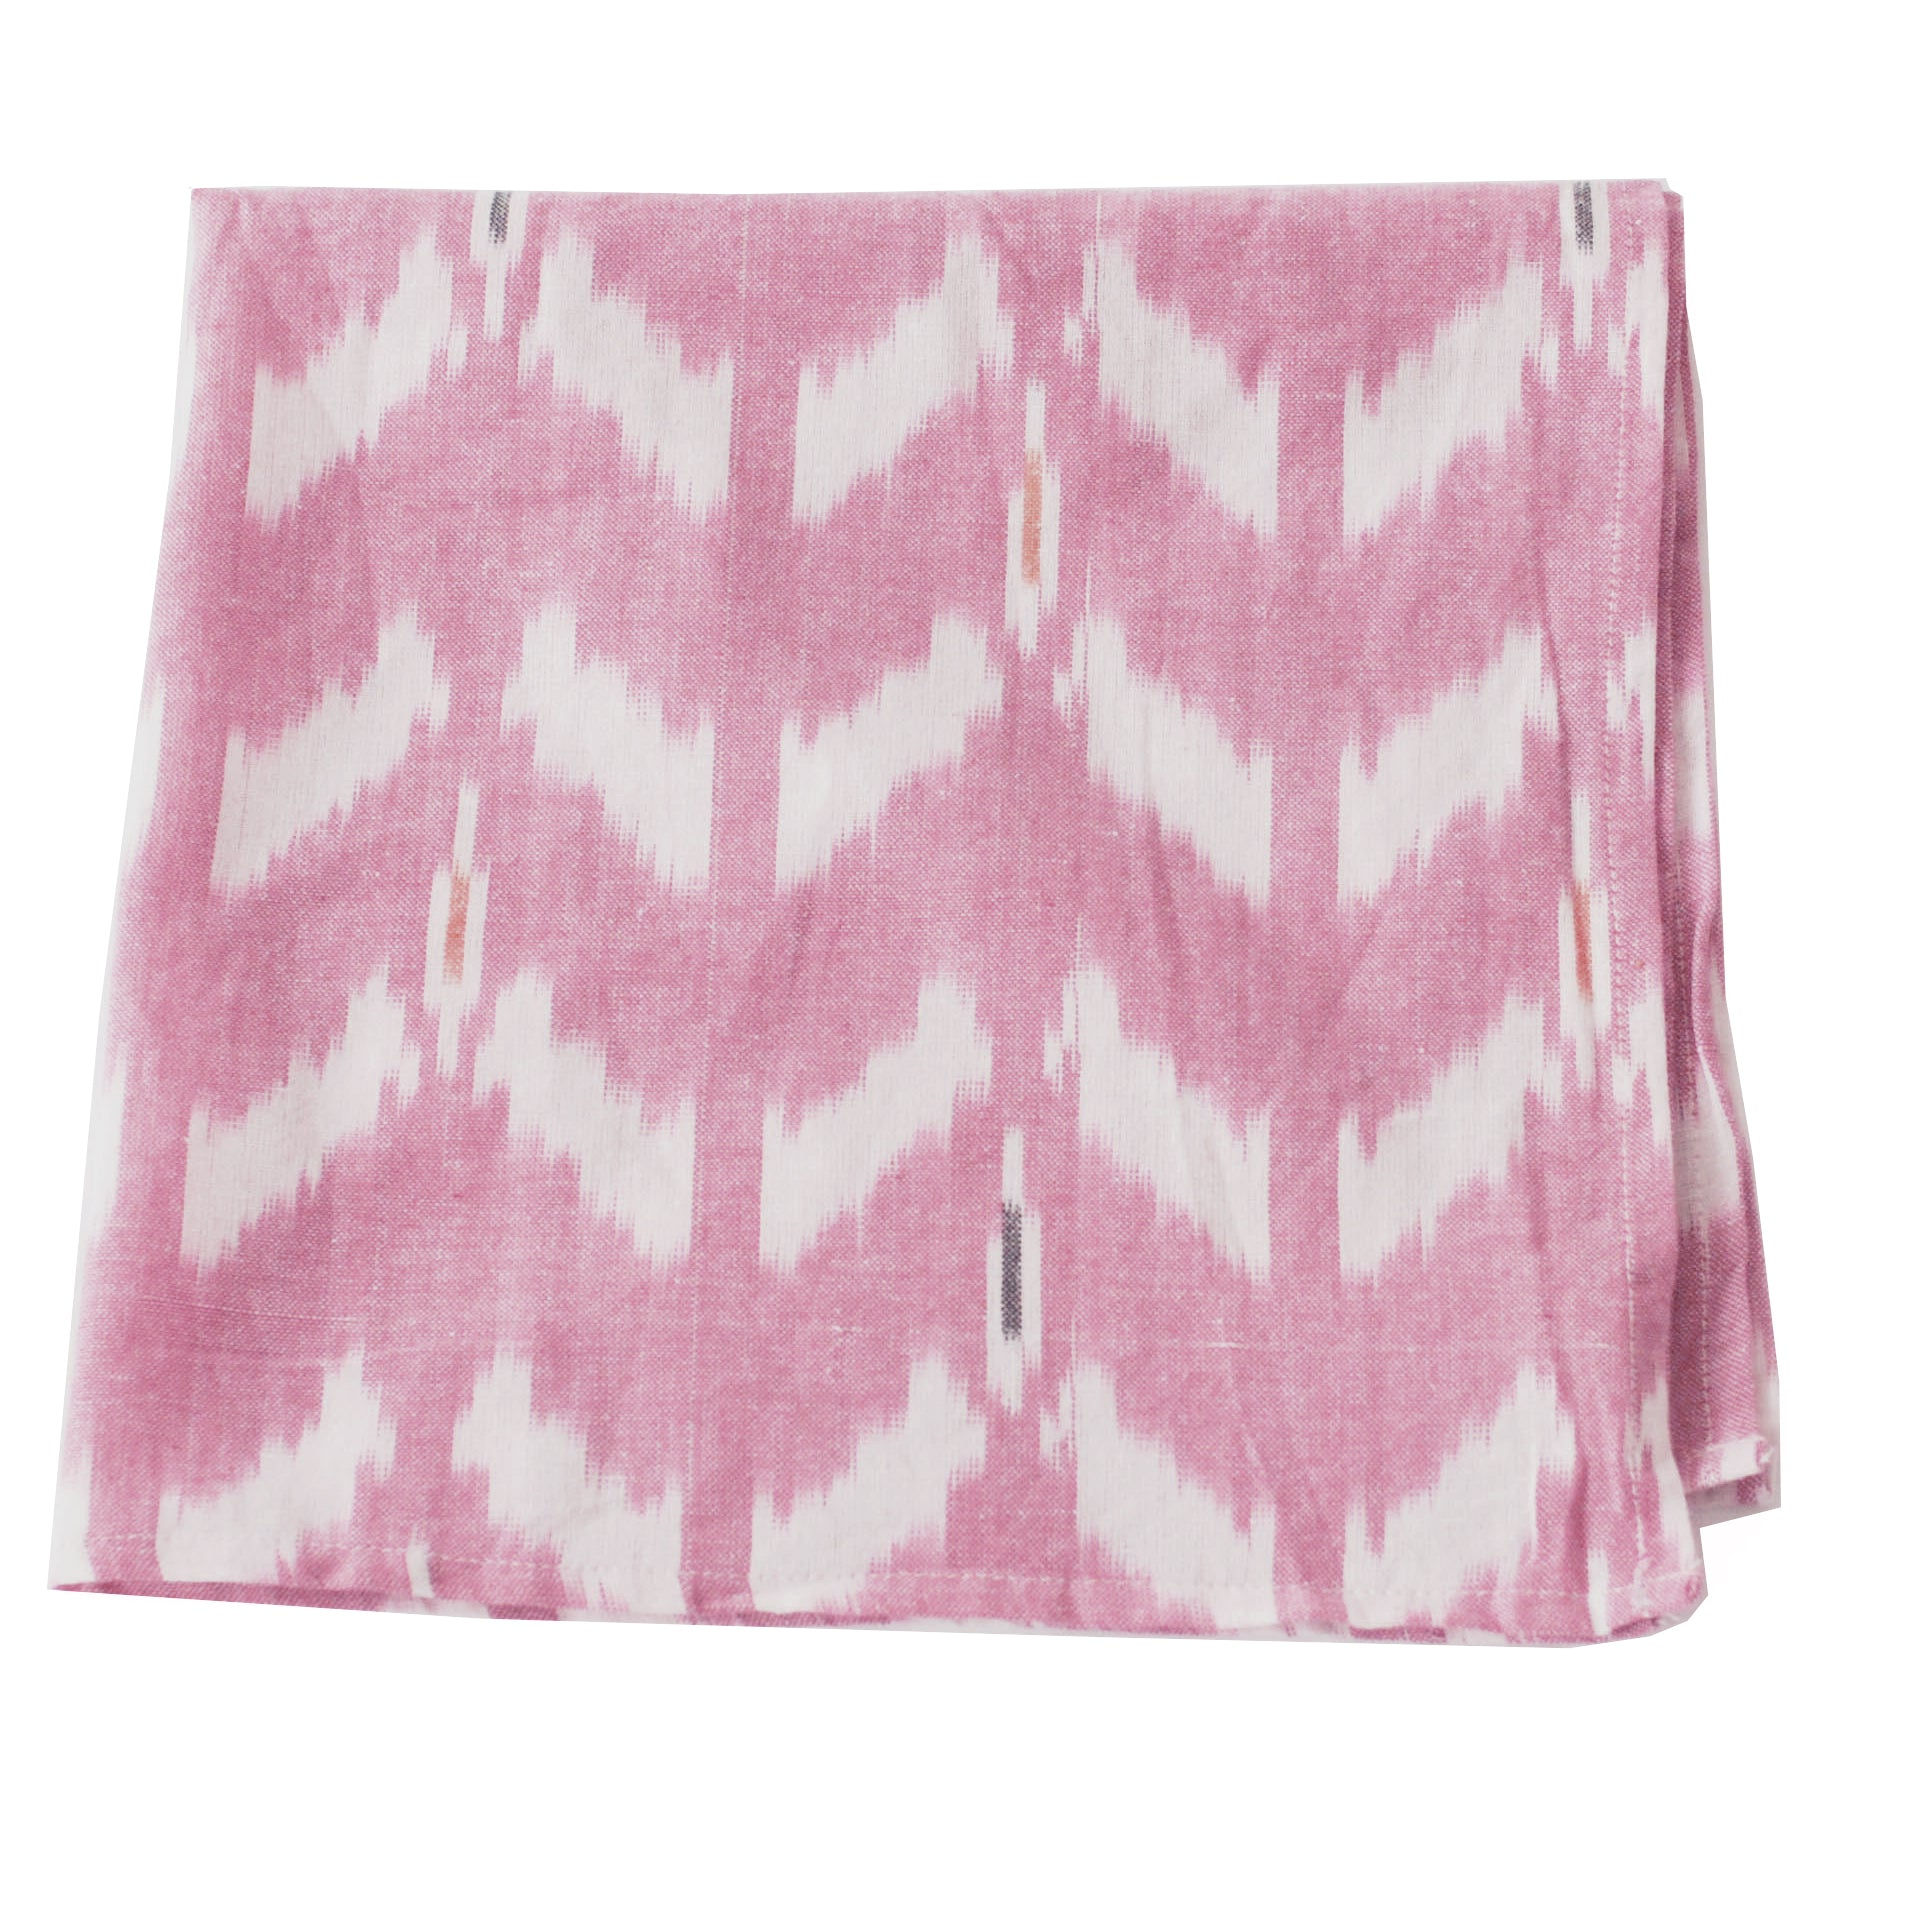 Rose Wine Tulip Pattern Ikat Cloth Dinner Napkin Set